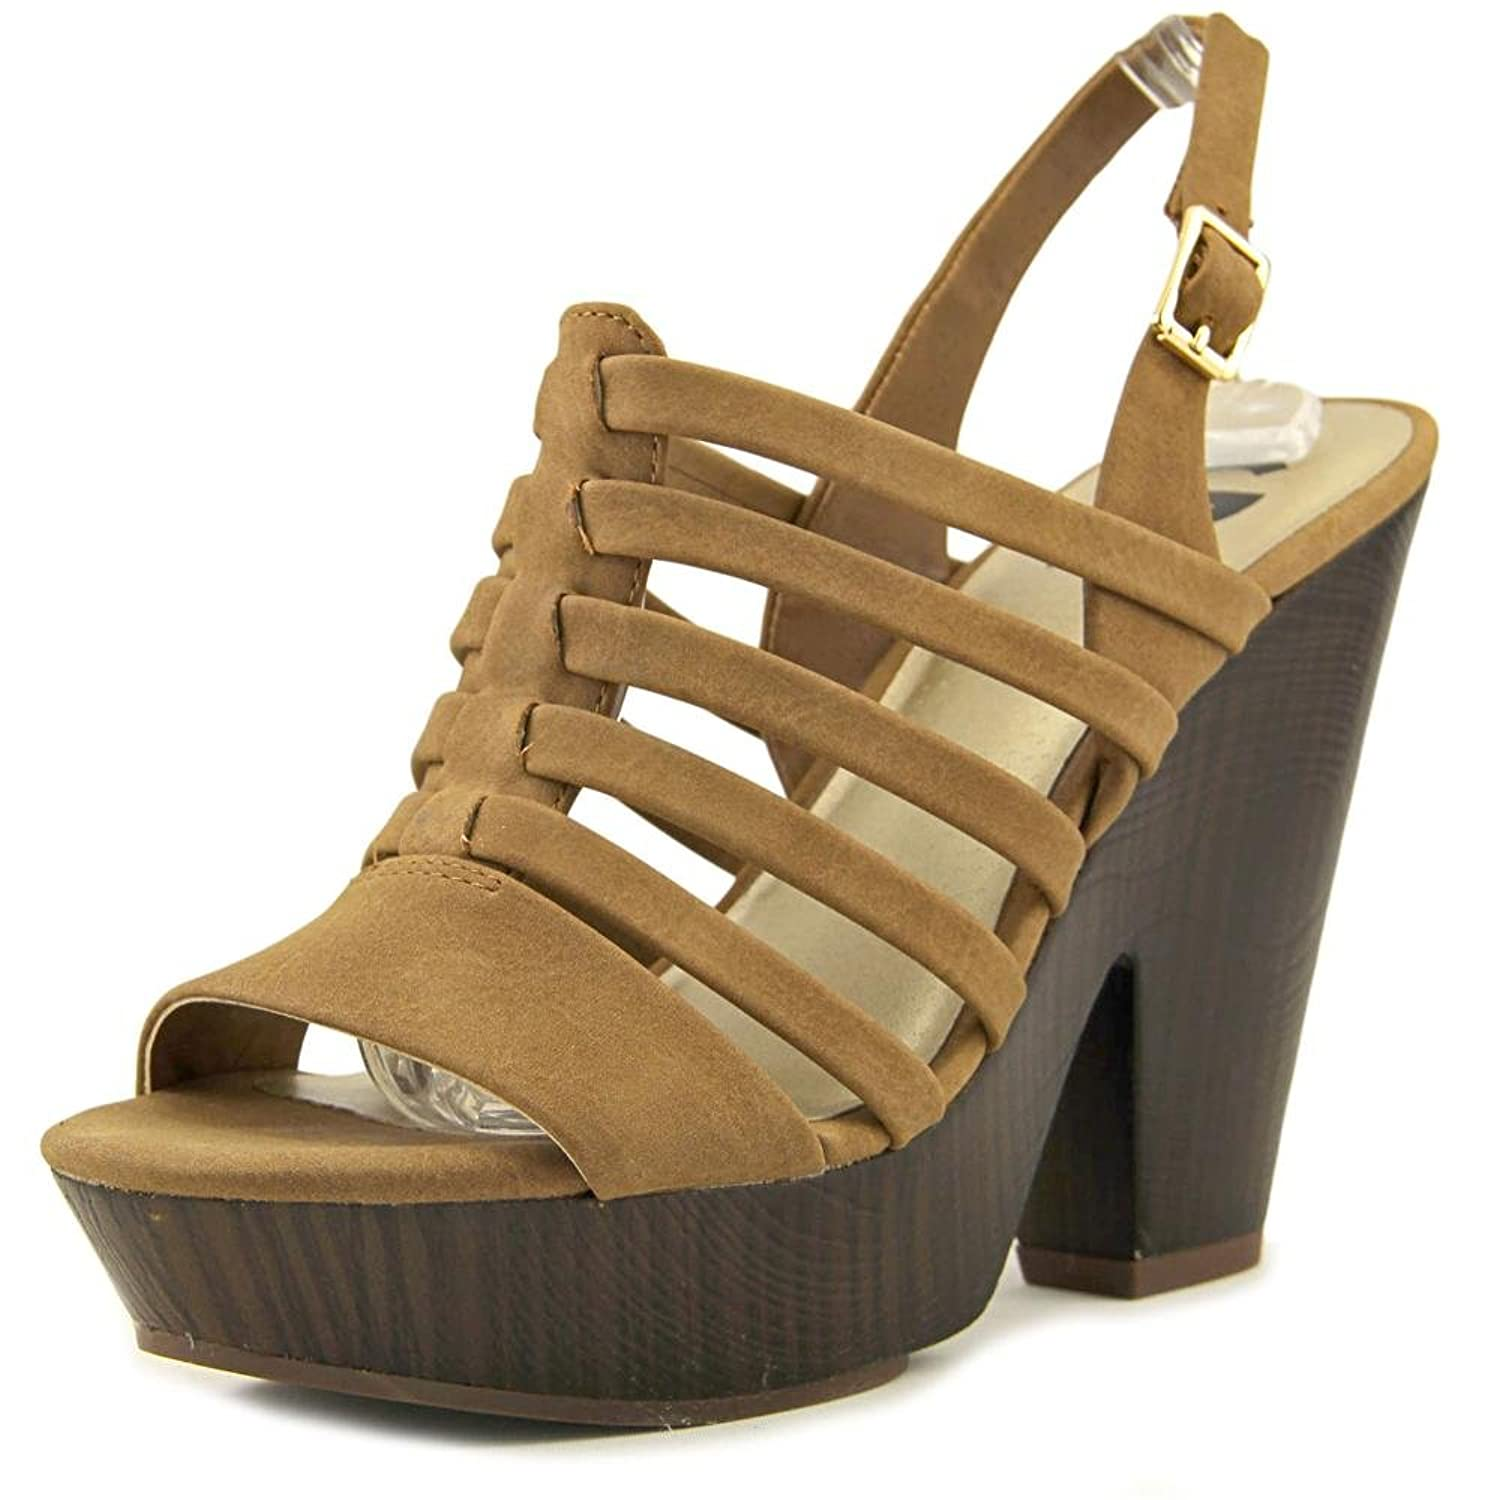 G by GUESS Womens Seany